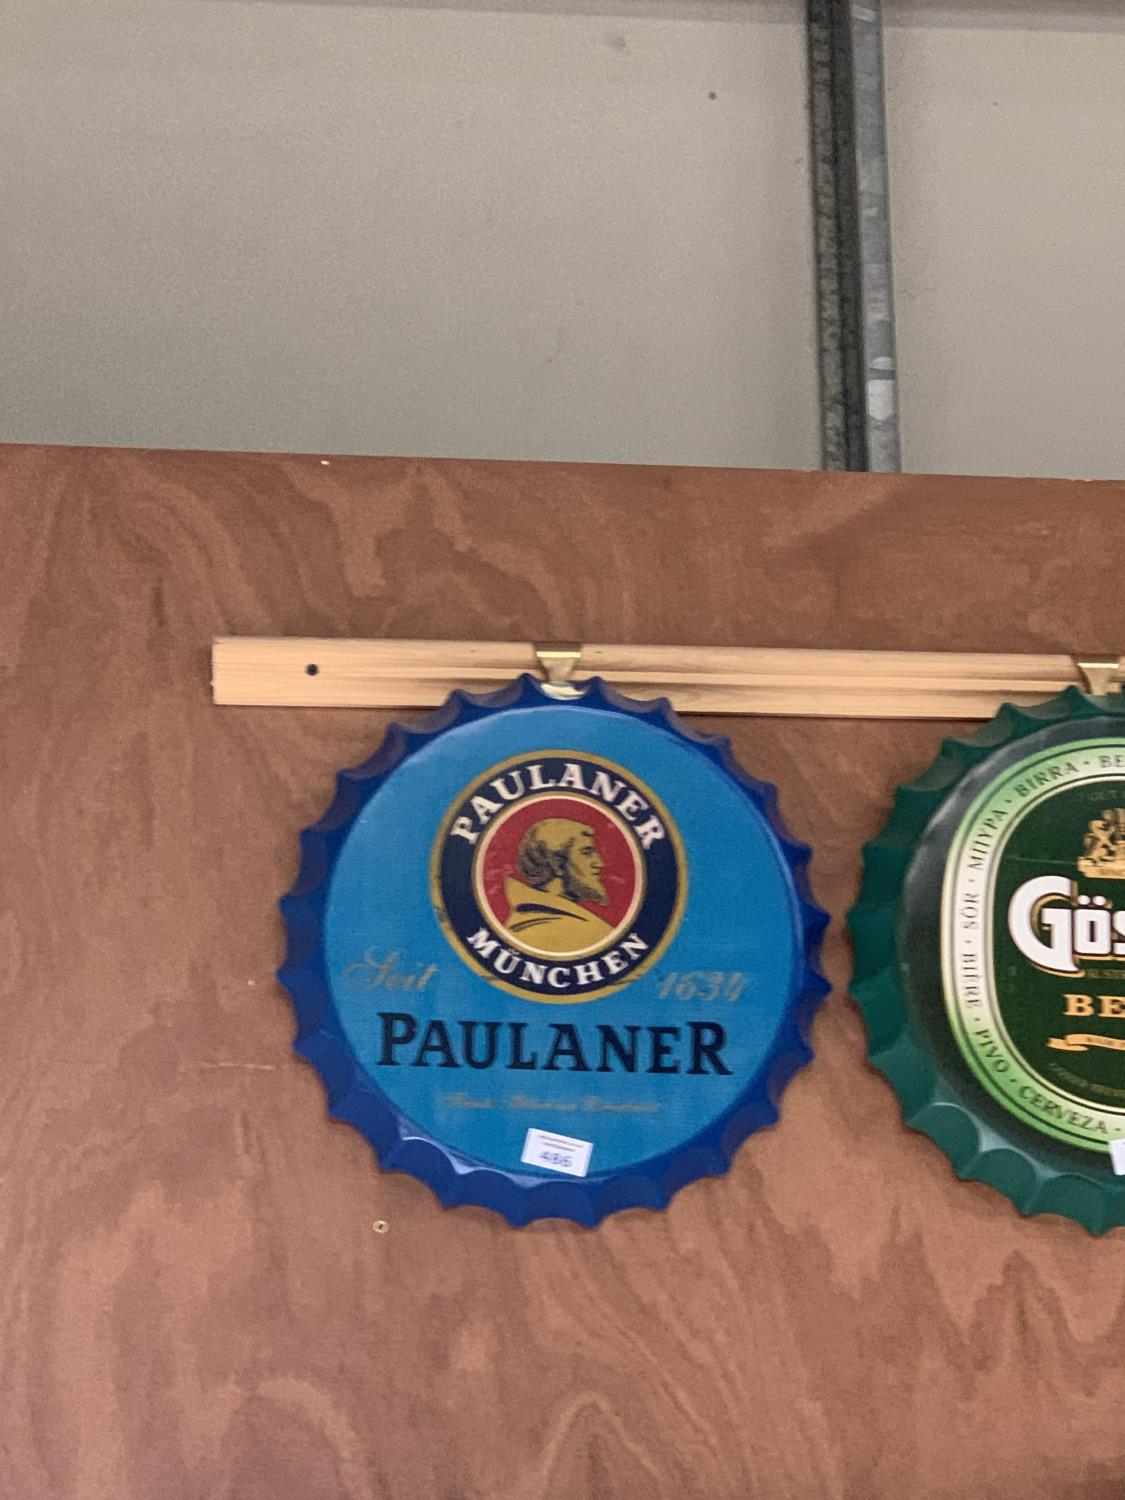 Lot 486 - A COLLECTABLE METAL BEER BOTTLE CAP 'PAULANER' SIGN